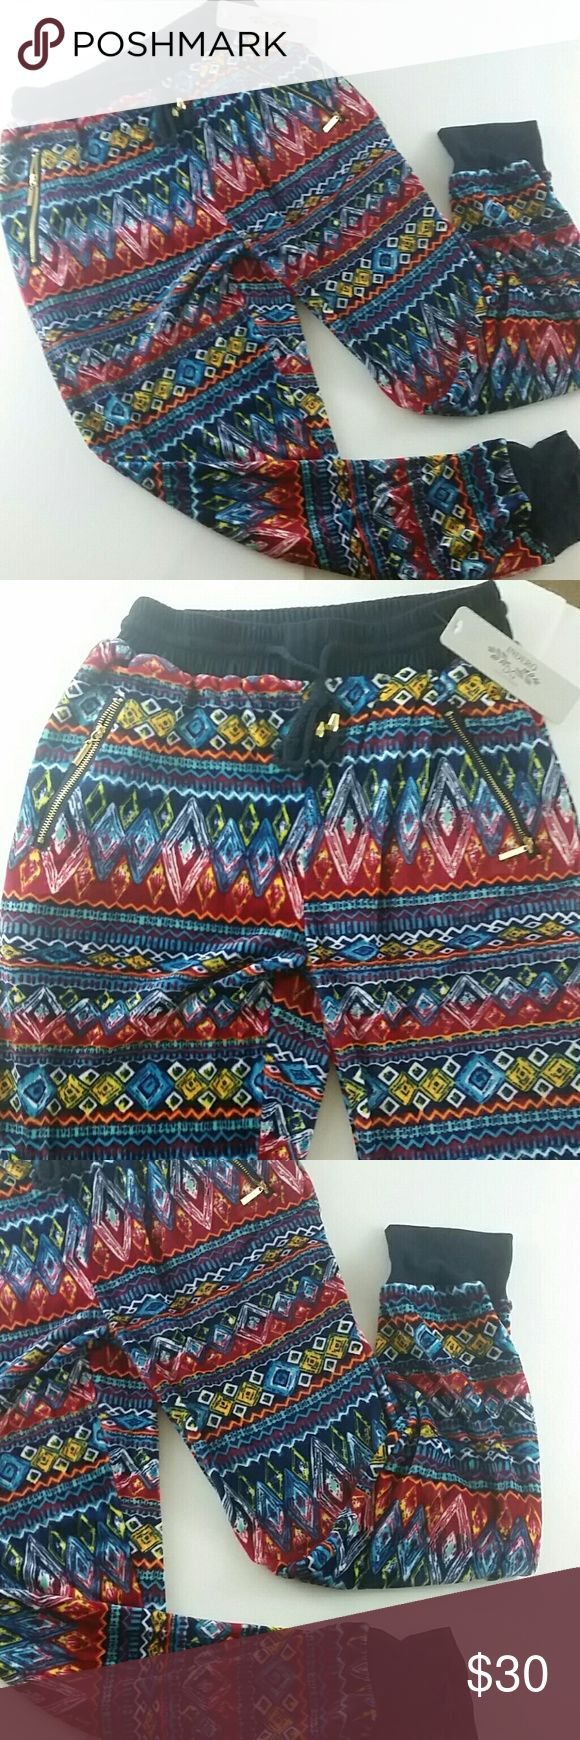 REMOVING SOON WAS $30 FINAL PRICE Aztec Print fun jogger pants, style with your favorite matching sneakers. Very comfortable and a great deal Pants Track Pants & Joggers